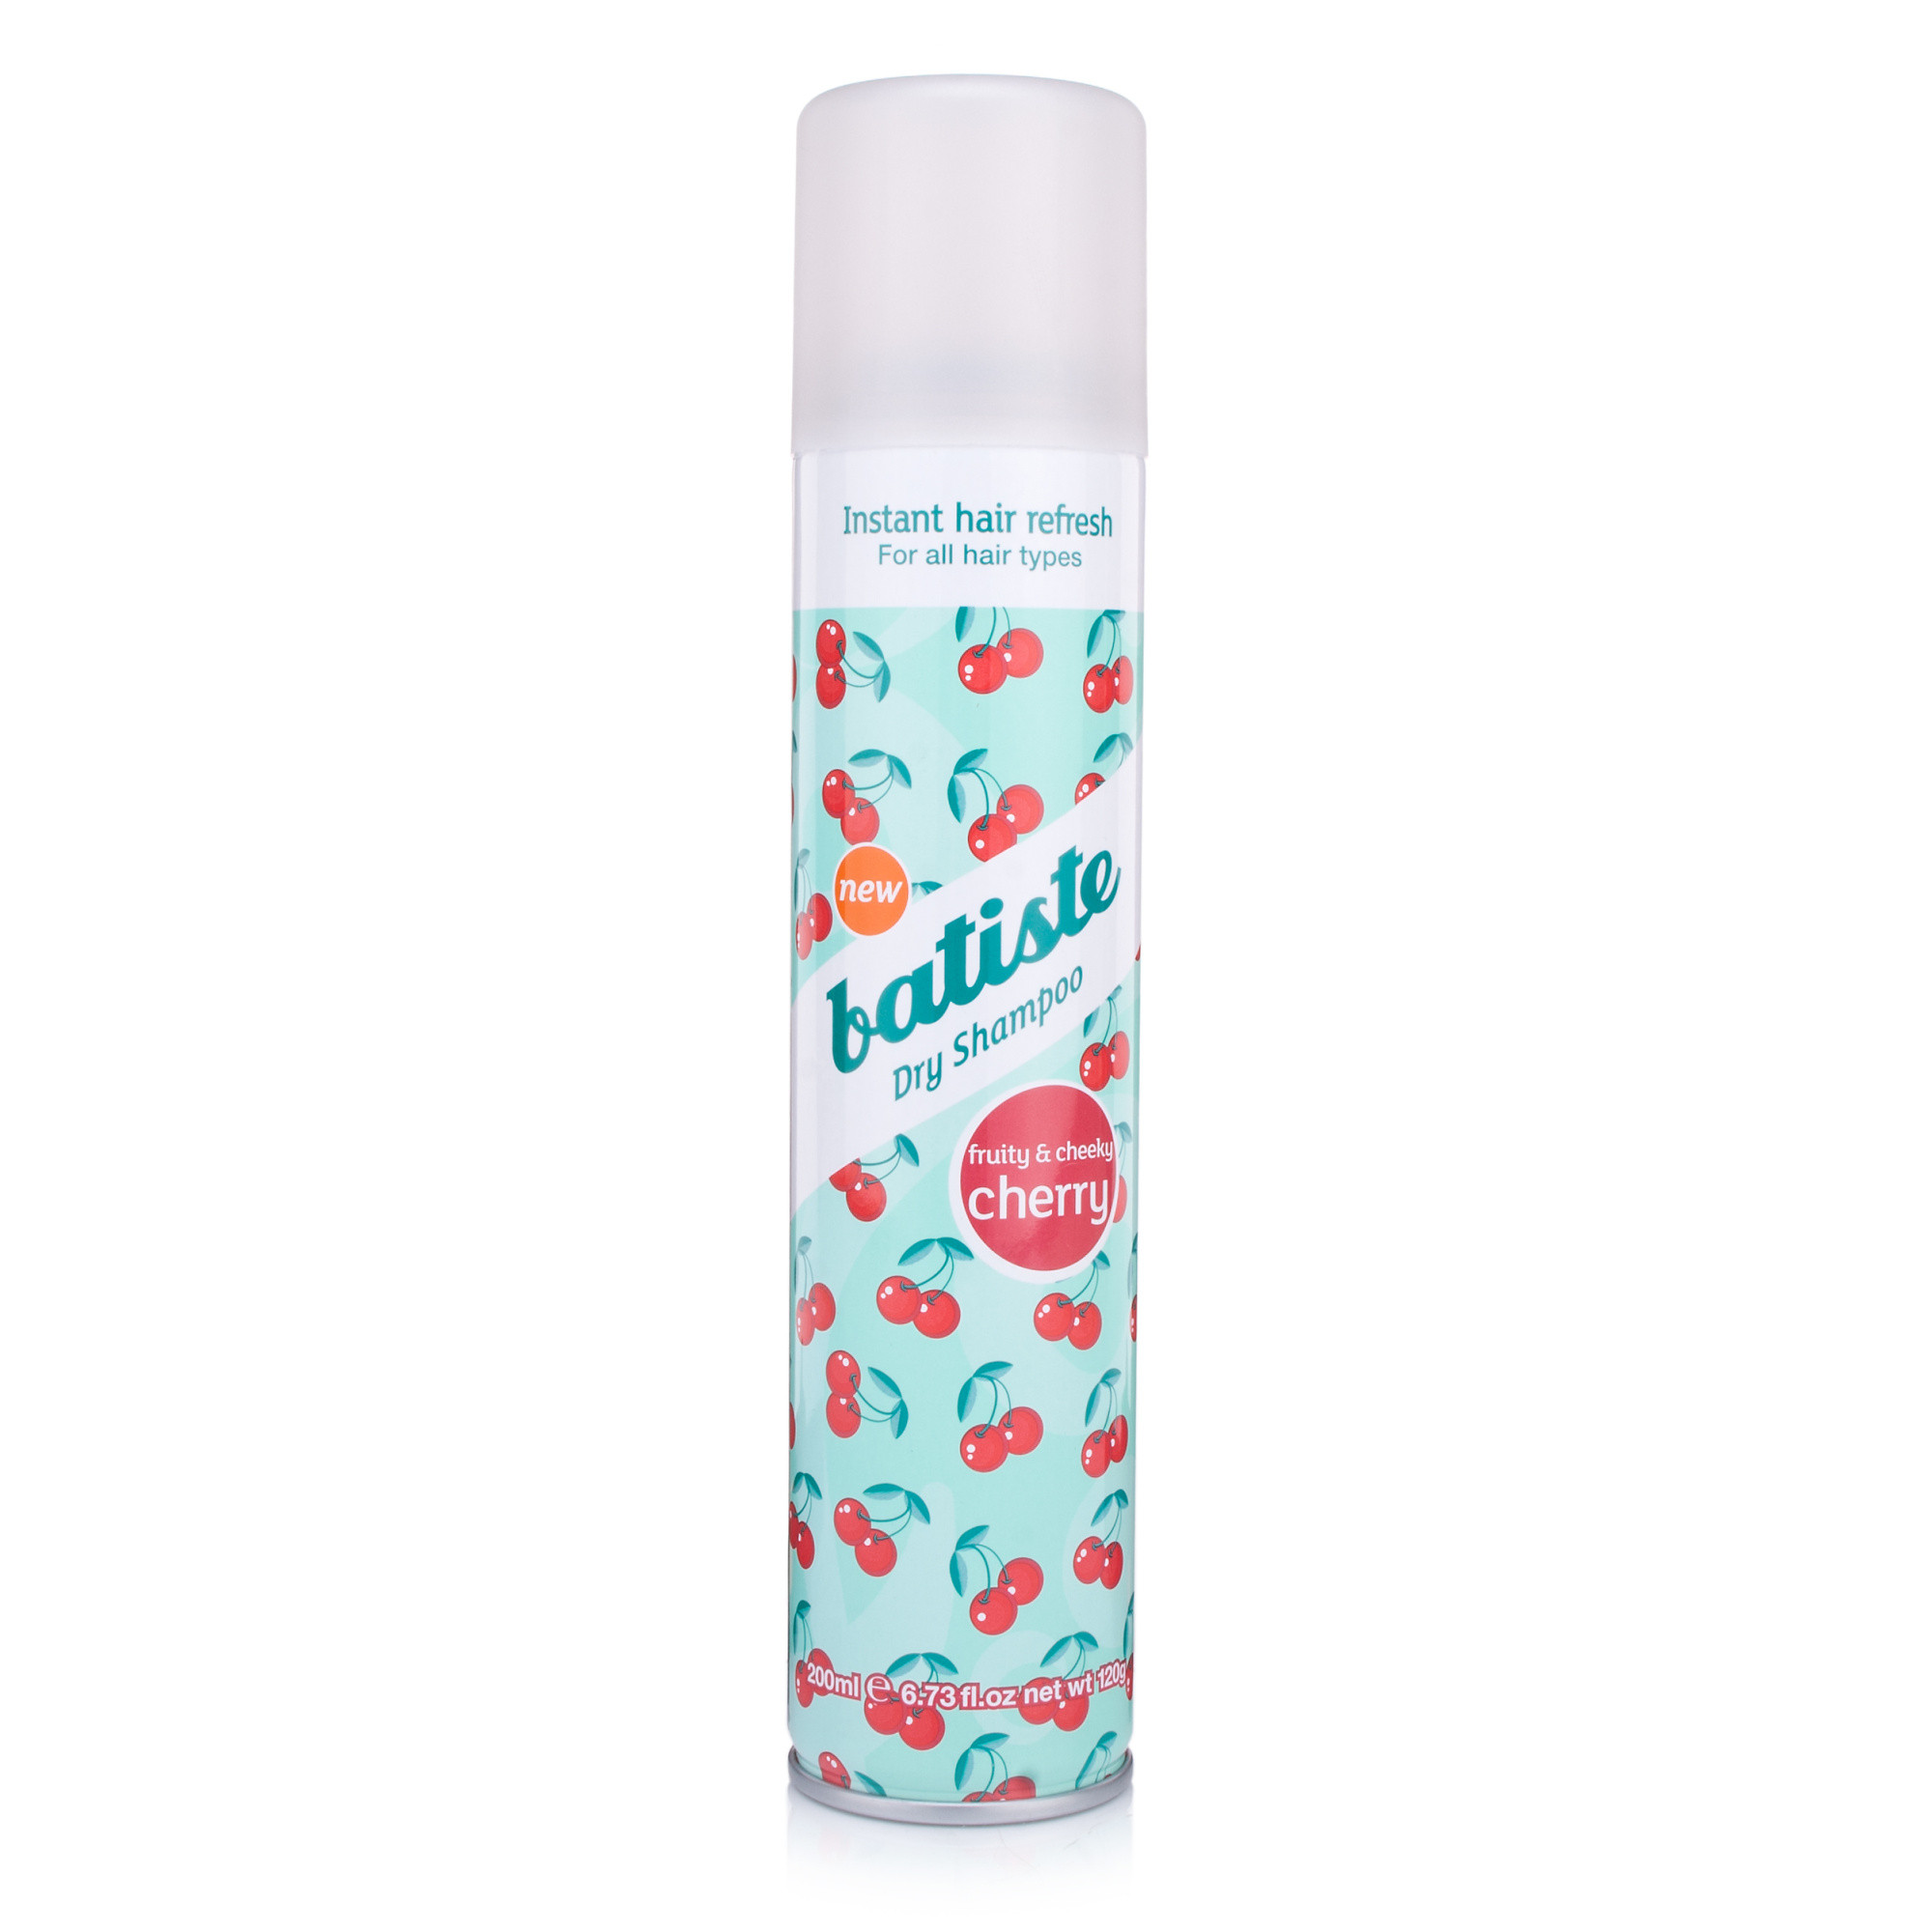 Batiste Dry Shampoo Fruity & Cheeky Cherry